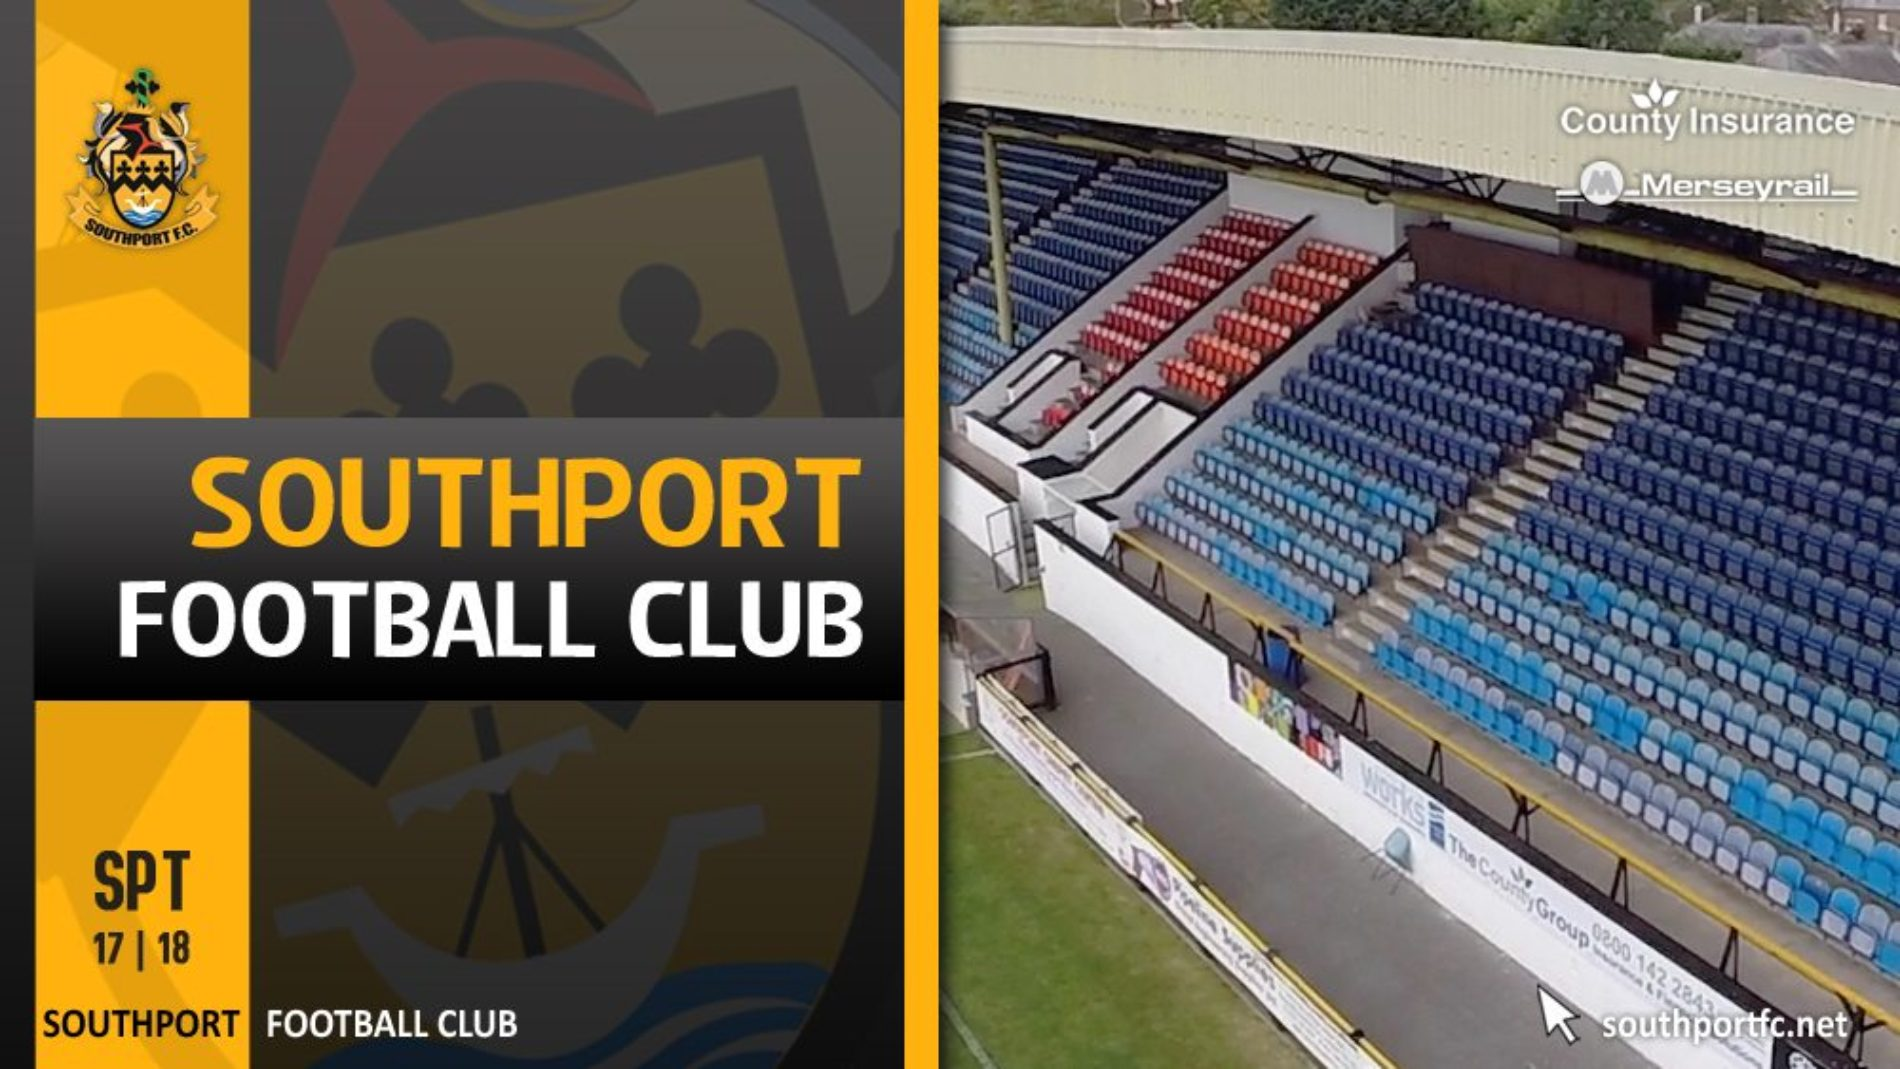 Over the forthcoming weeks the club website will be moved to a new hosting platform, which will see increased reliability and performance for users accessing the site.    The club has been reviewing the current digital set up since the beginning of the season and a range of changes, upgrades and...